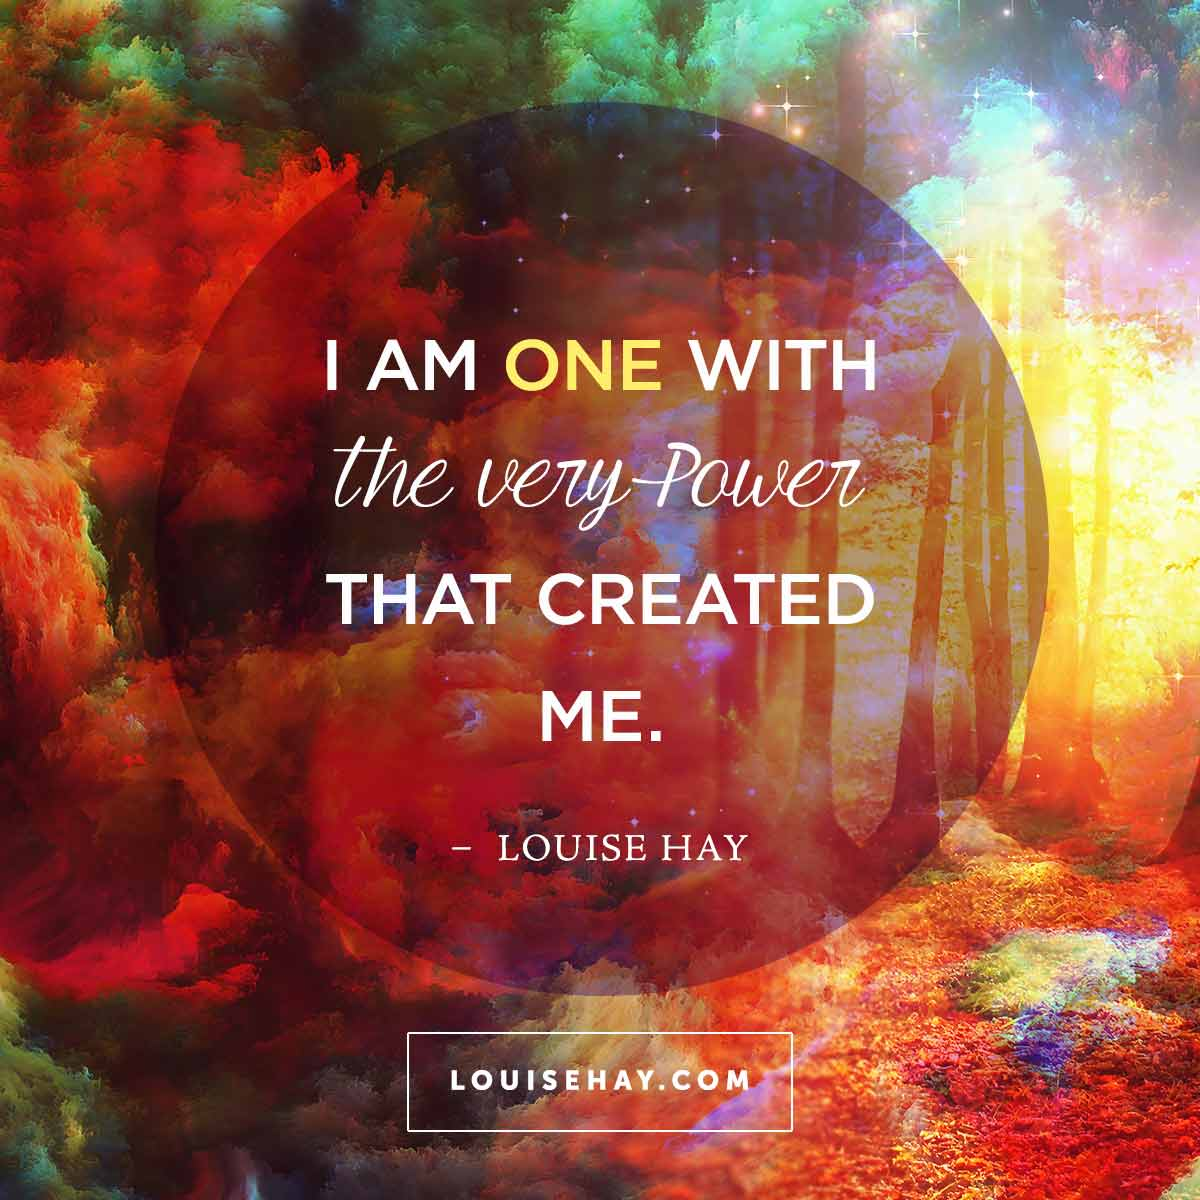 louise-hay-quotes-inspiration-one-with-creator.jpg